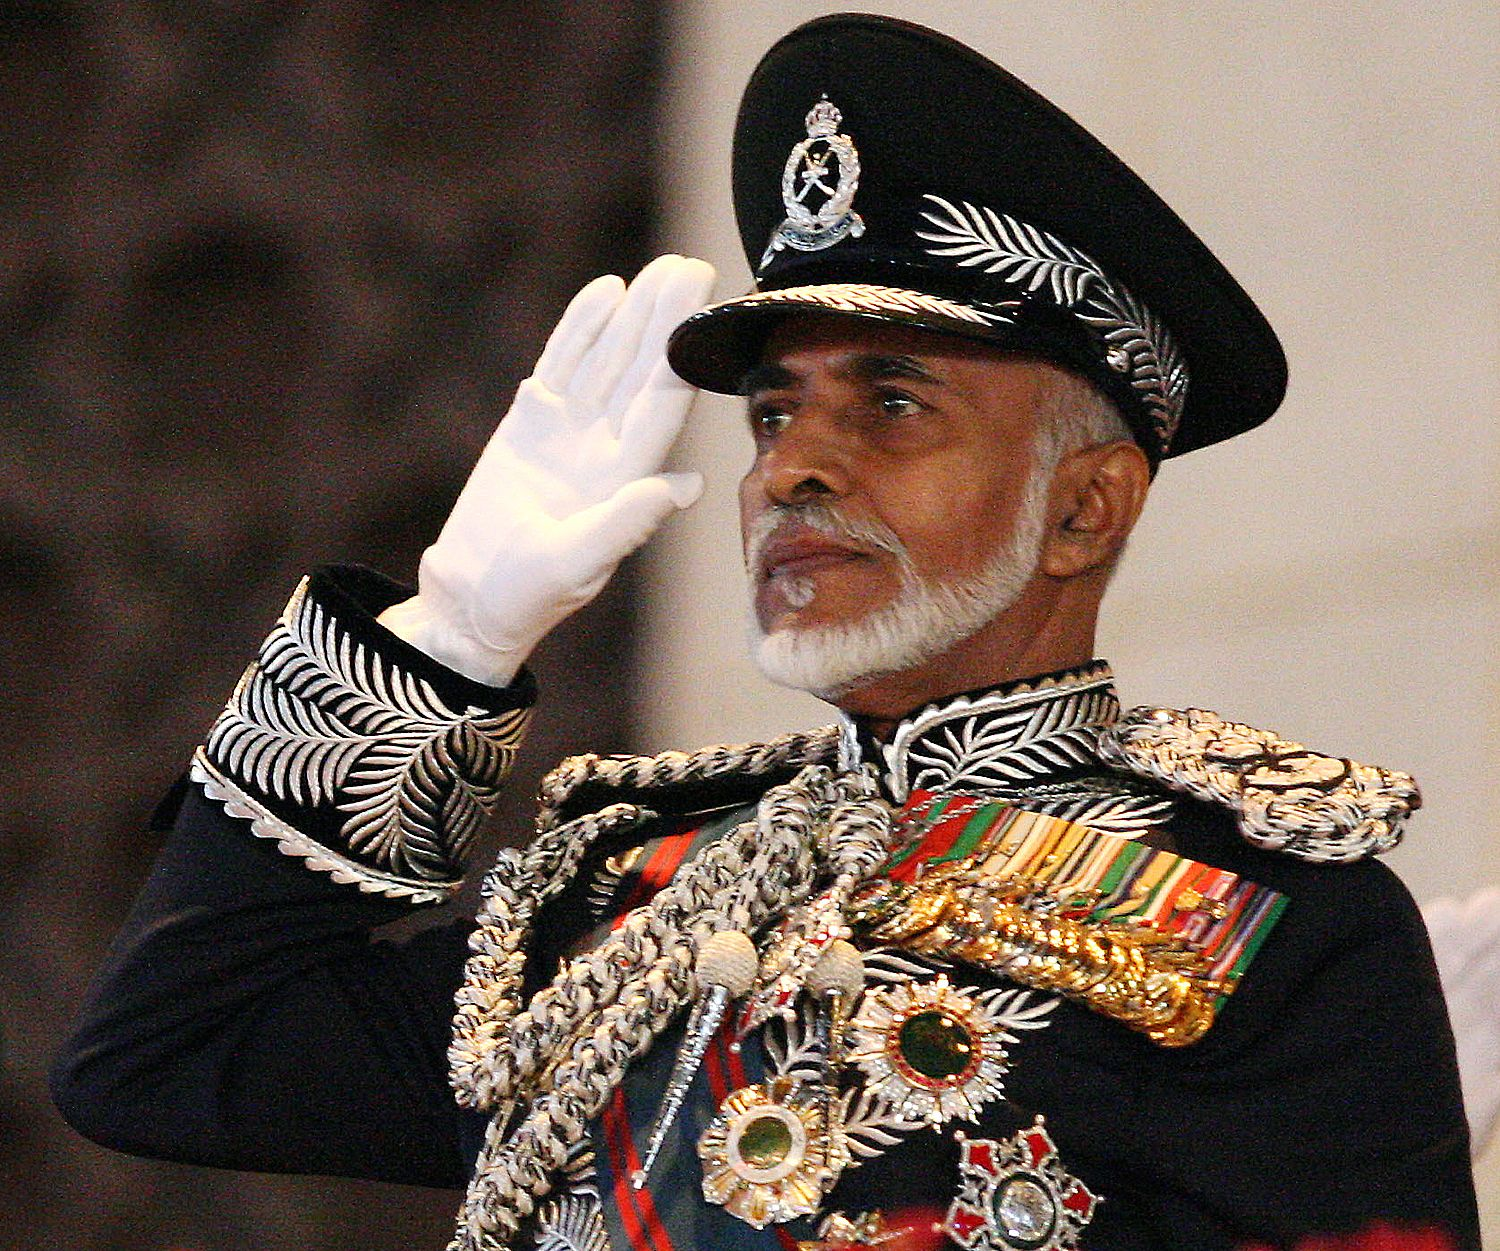 the sultan of oman may be way better on human rights than gaddafi